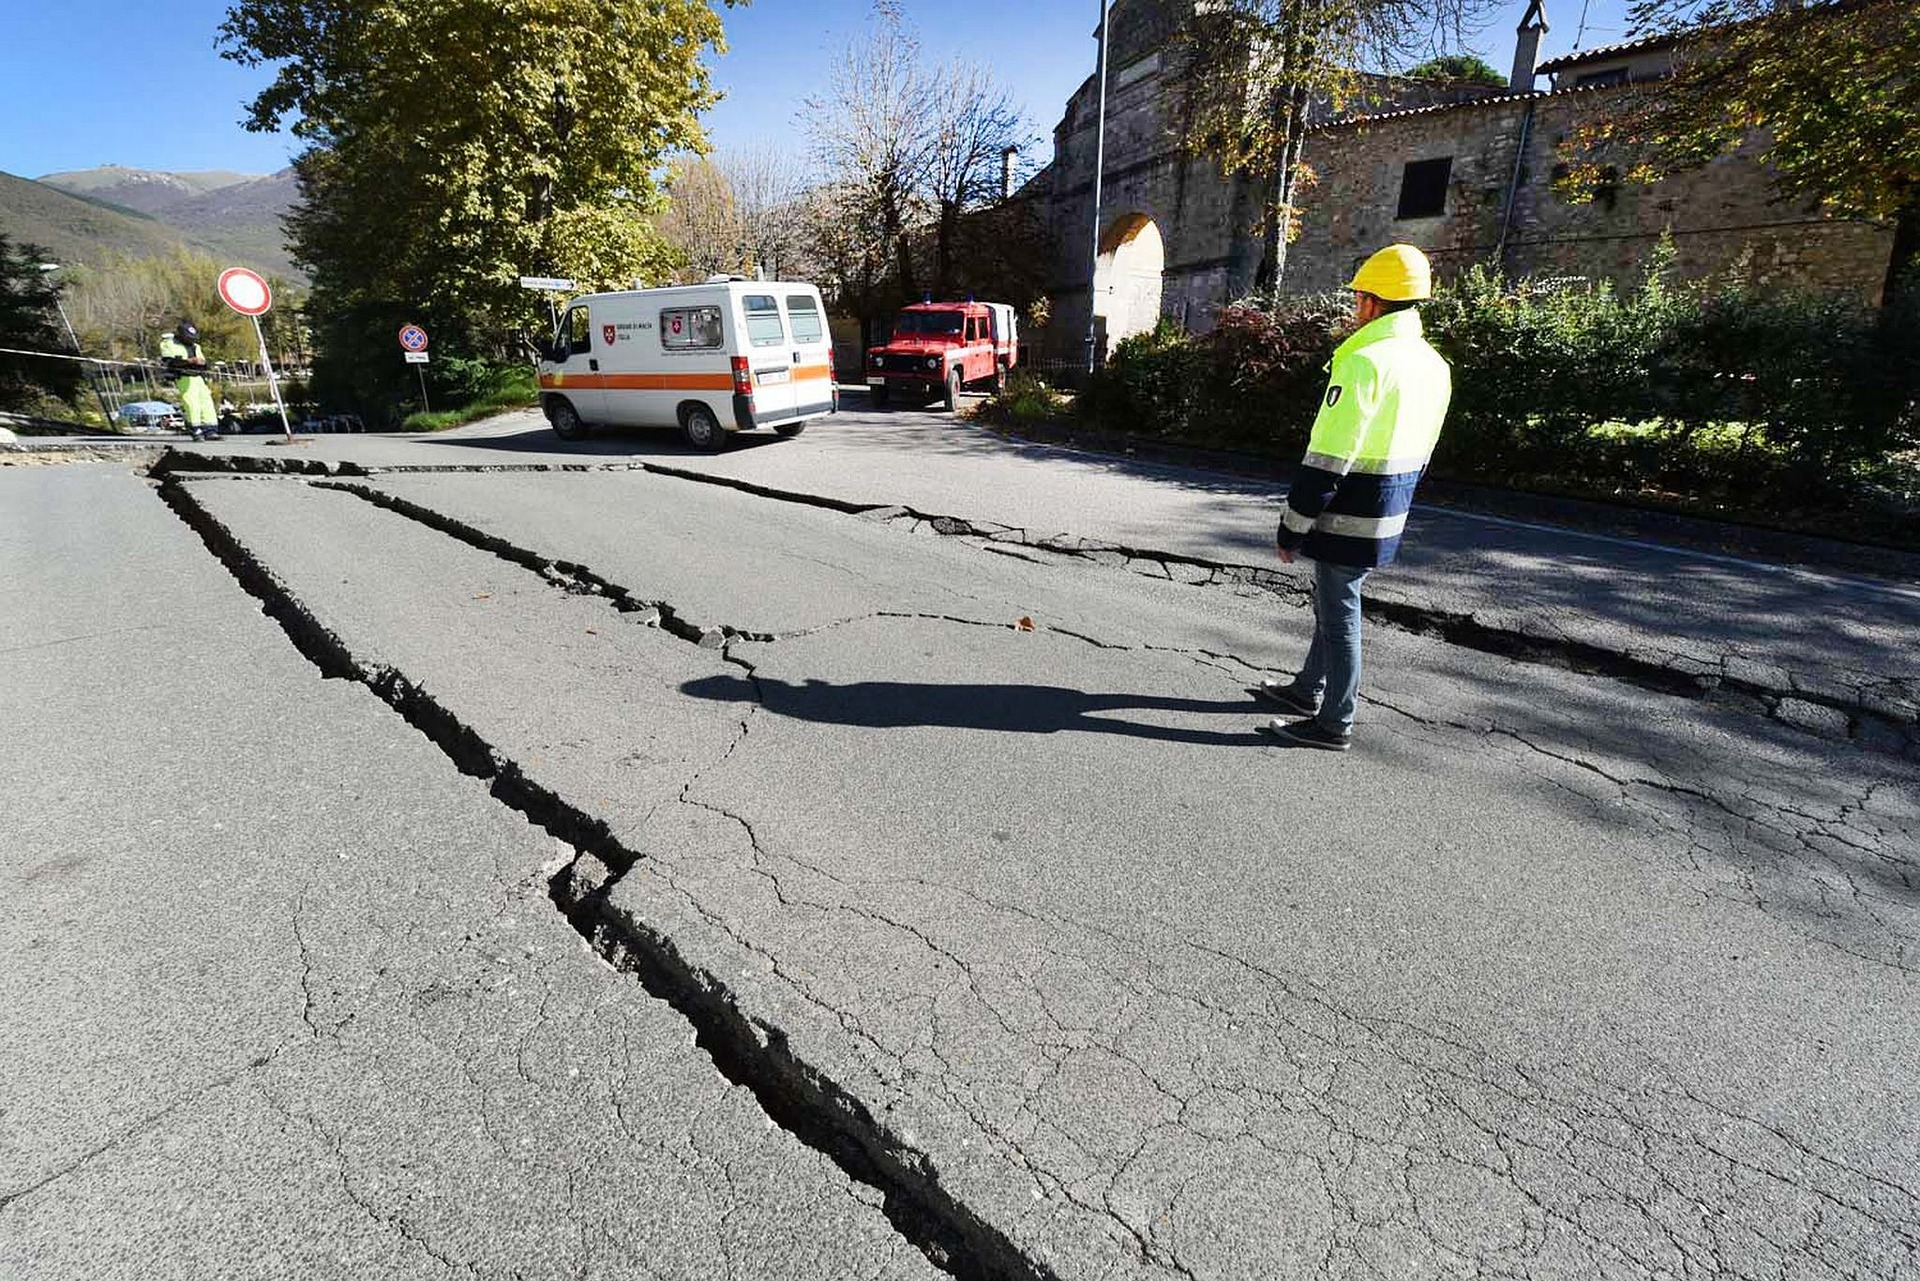 Unlike regular earthquakes, which can cause visible damage, slow earthquakes cannot be felt at the Earth's surface. Image credit - Pixabay/ marcellomigliosi1956, licensed under pixabay license